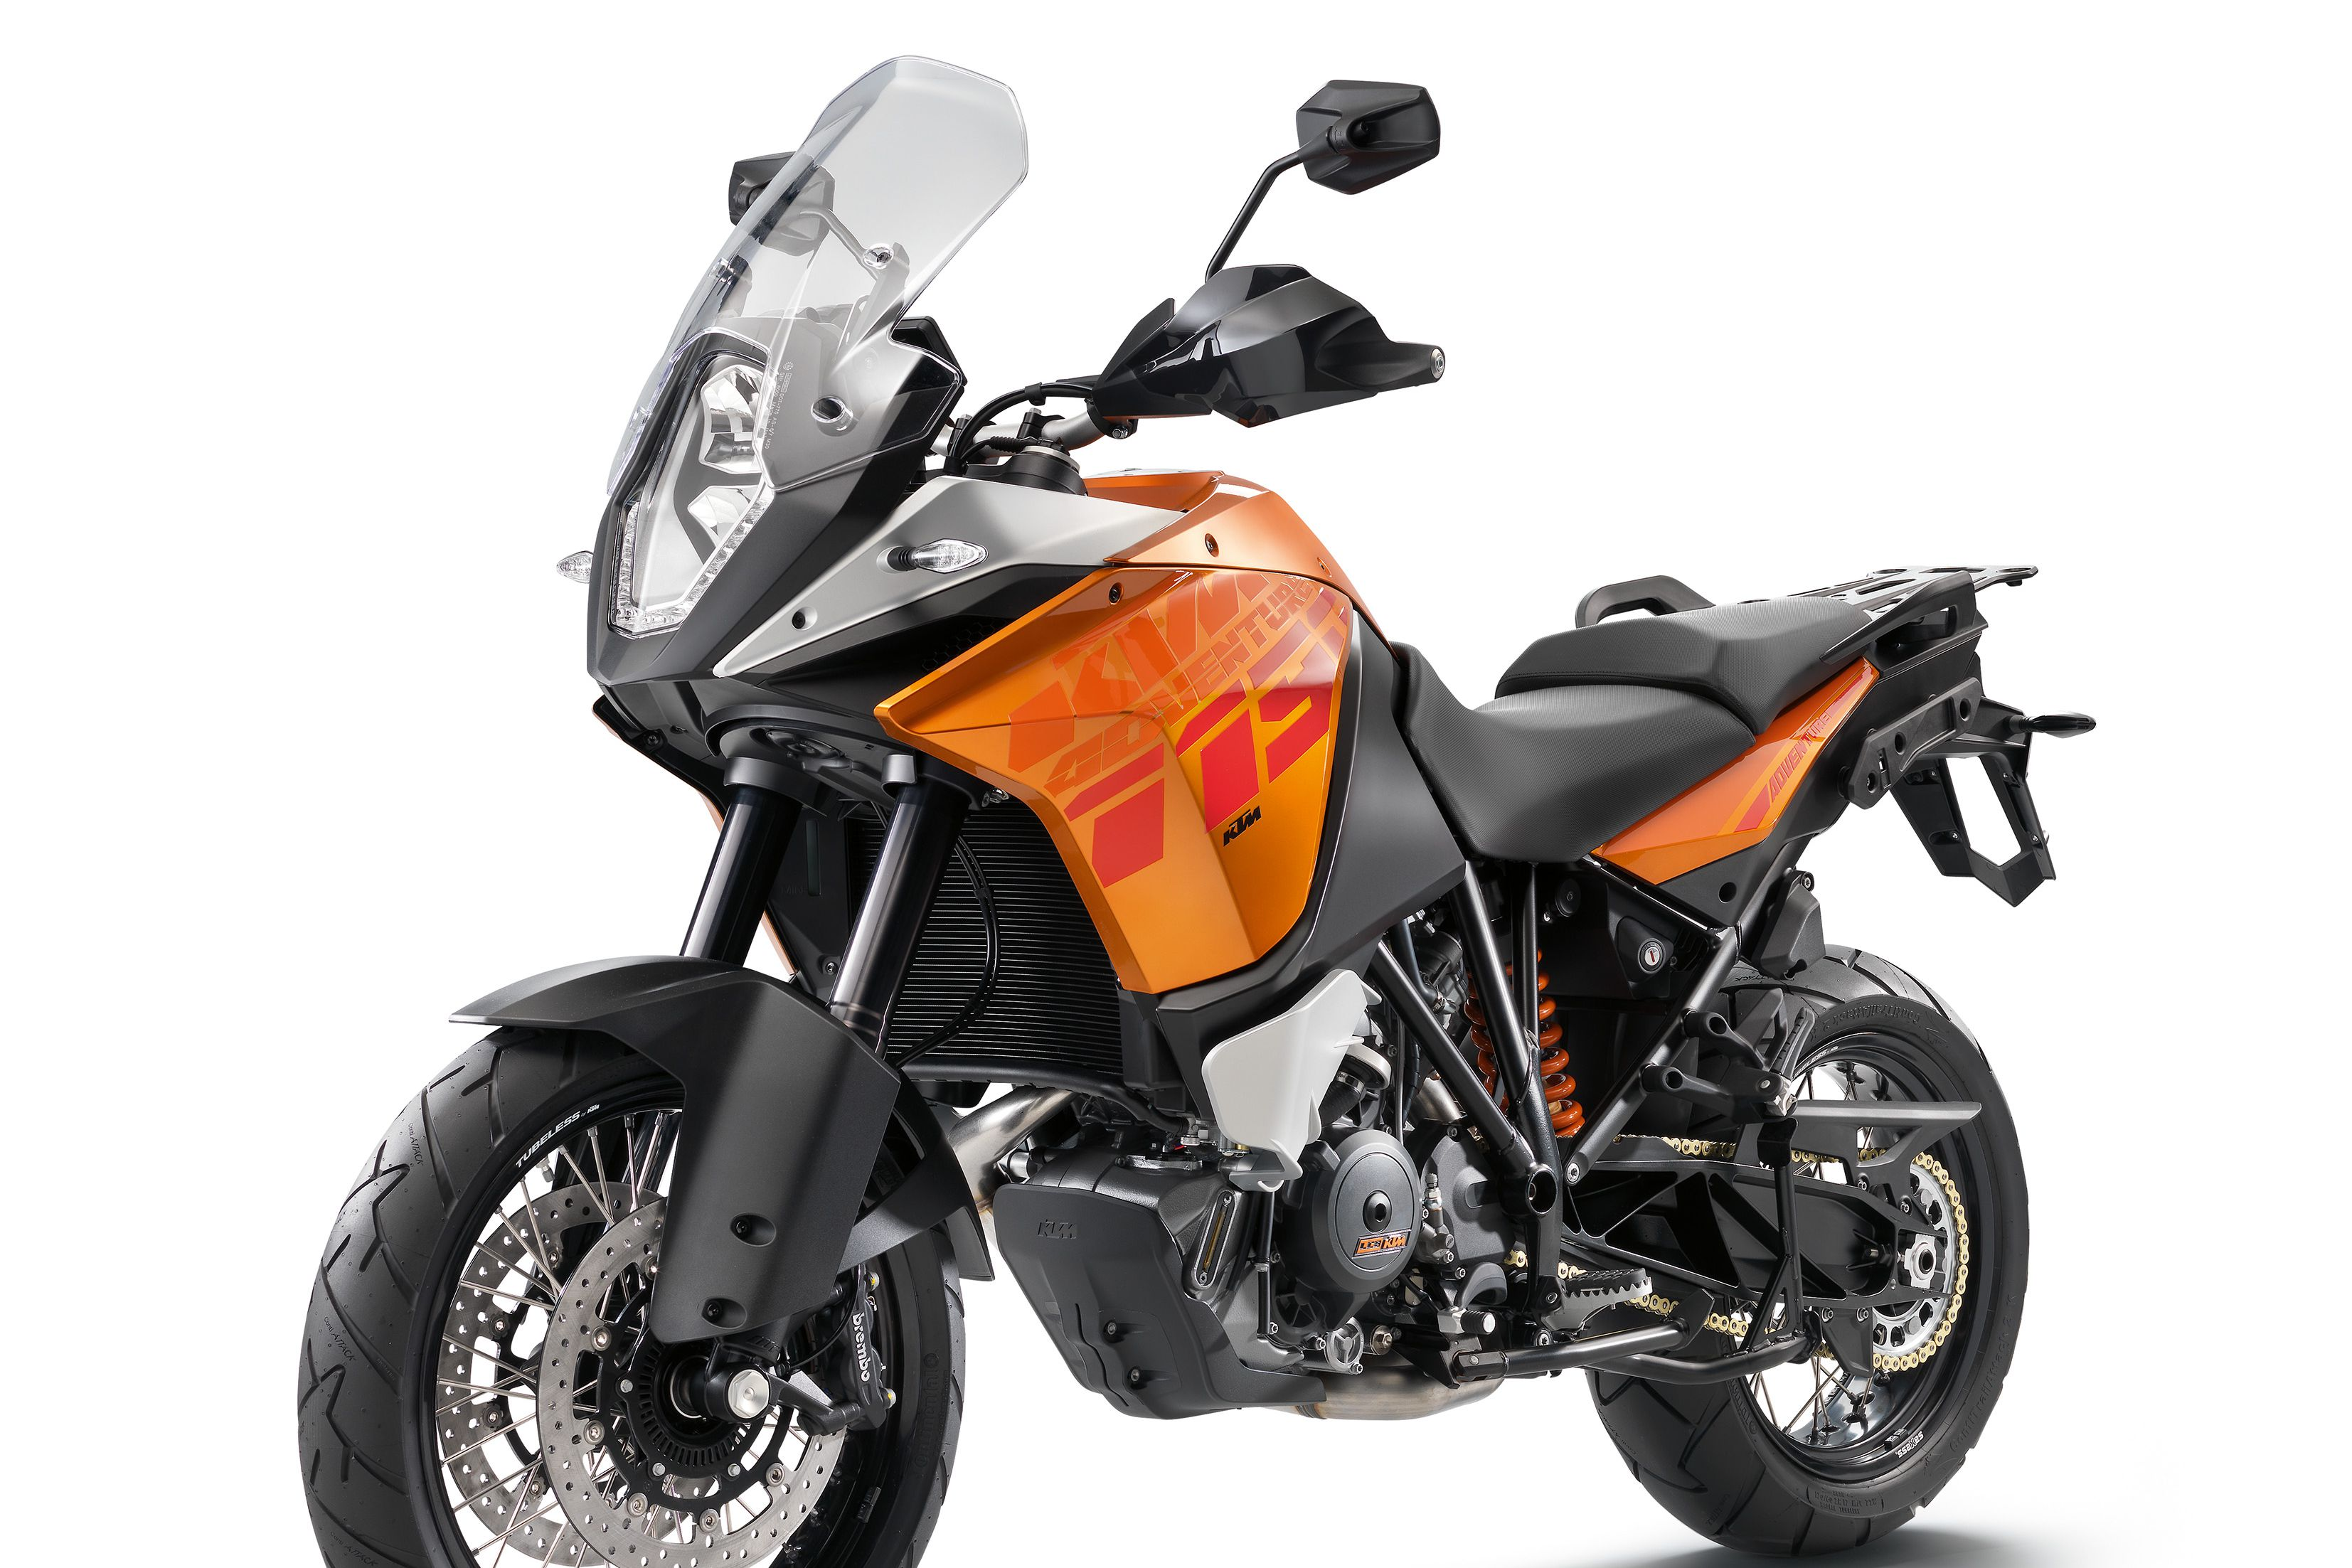 Updated KTM 1190 Adventure spotted on test